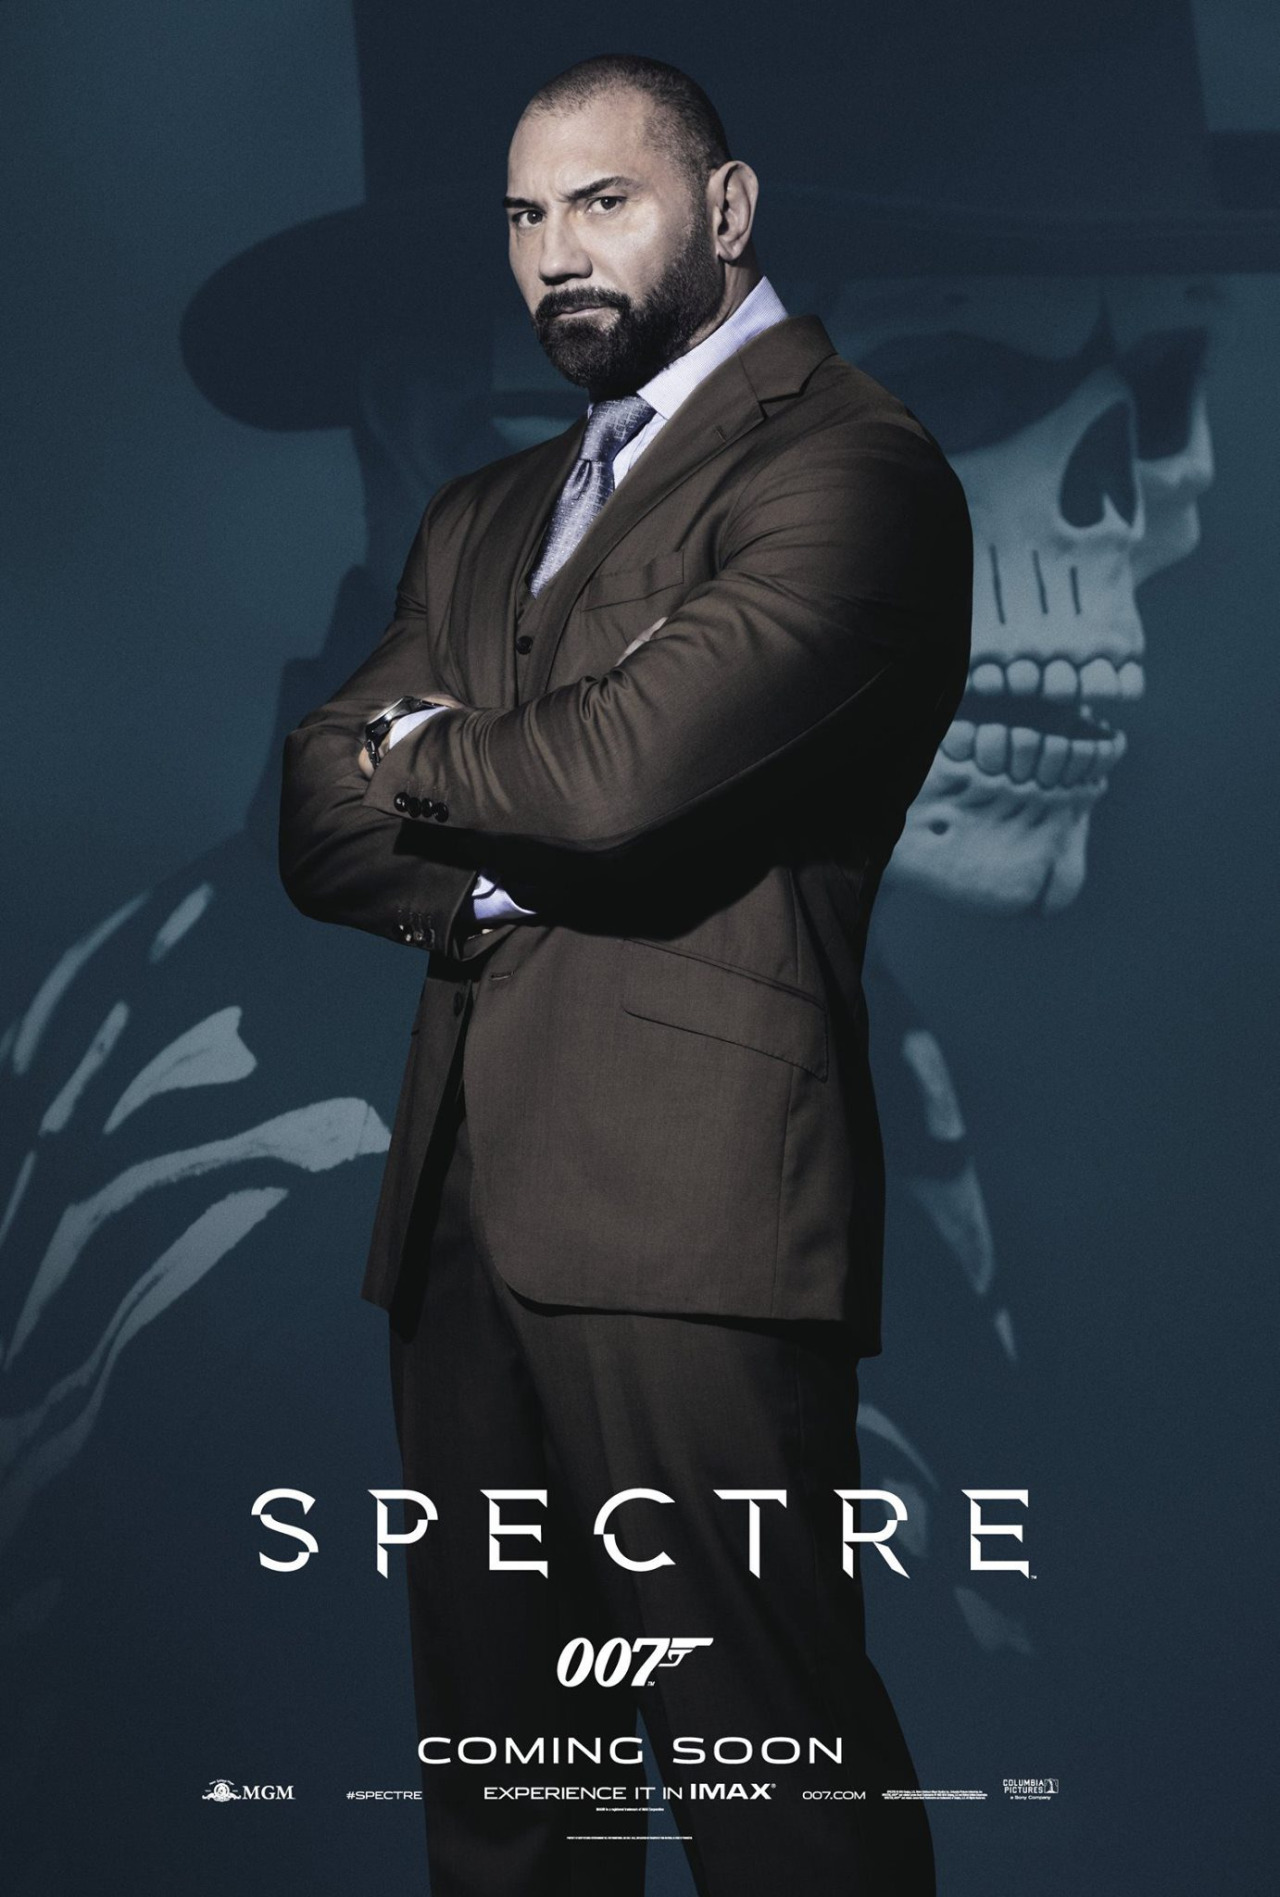 James Bond Spectre Online